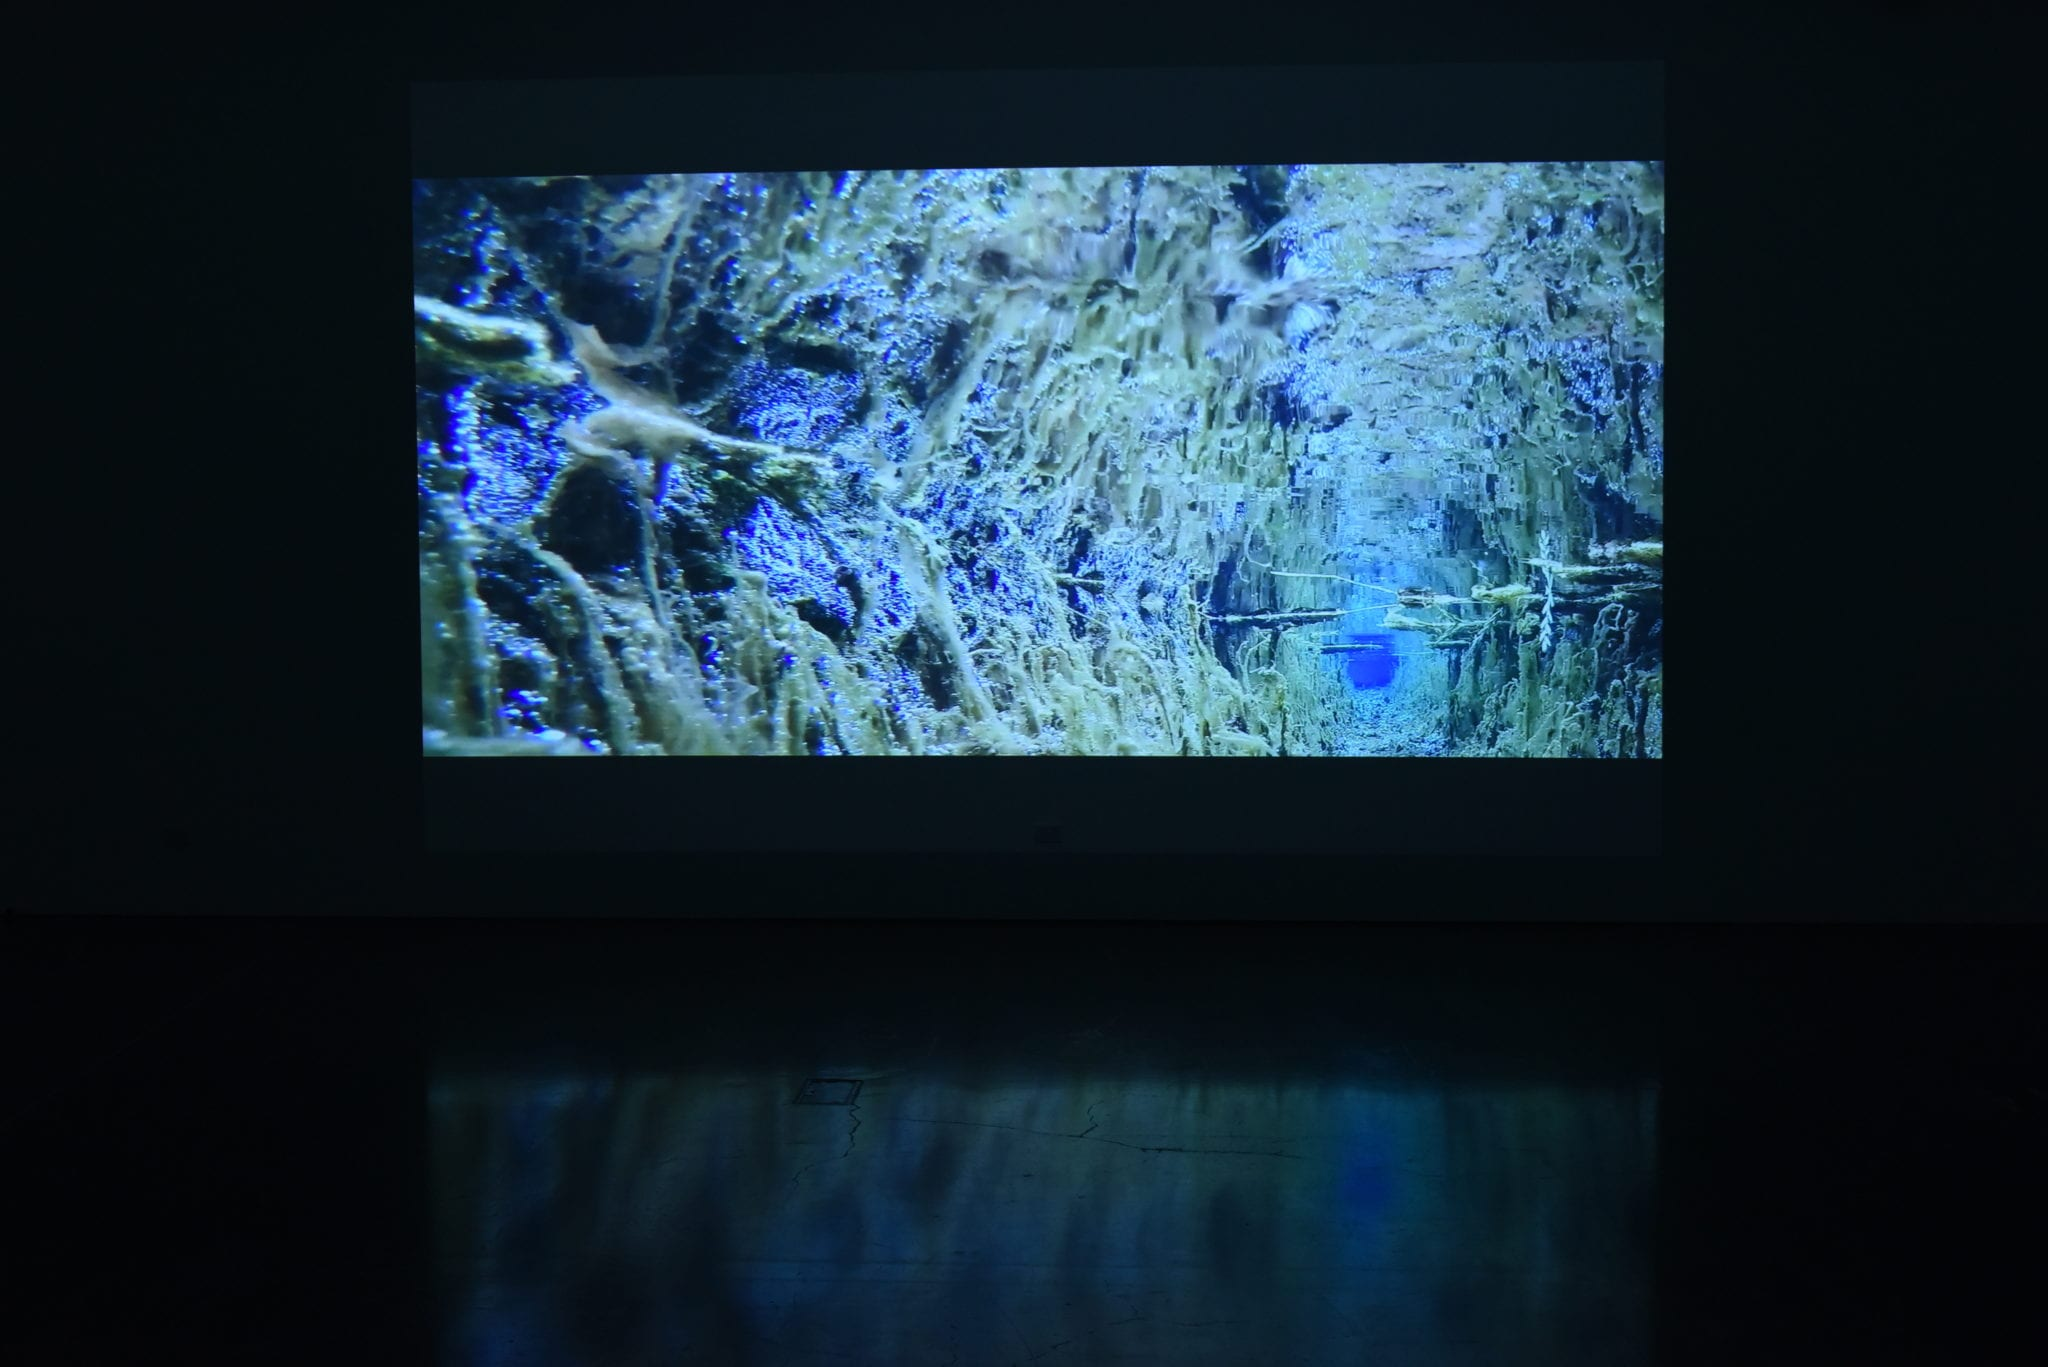 Exhibition documentation, The Stream by Hiroya Sakurai, 2 February to 24 March 2019, Gallery 3, Latrobe Regional Gallery. Photograph: Latrobe Regional Gallery.